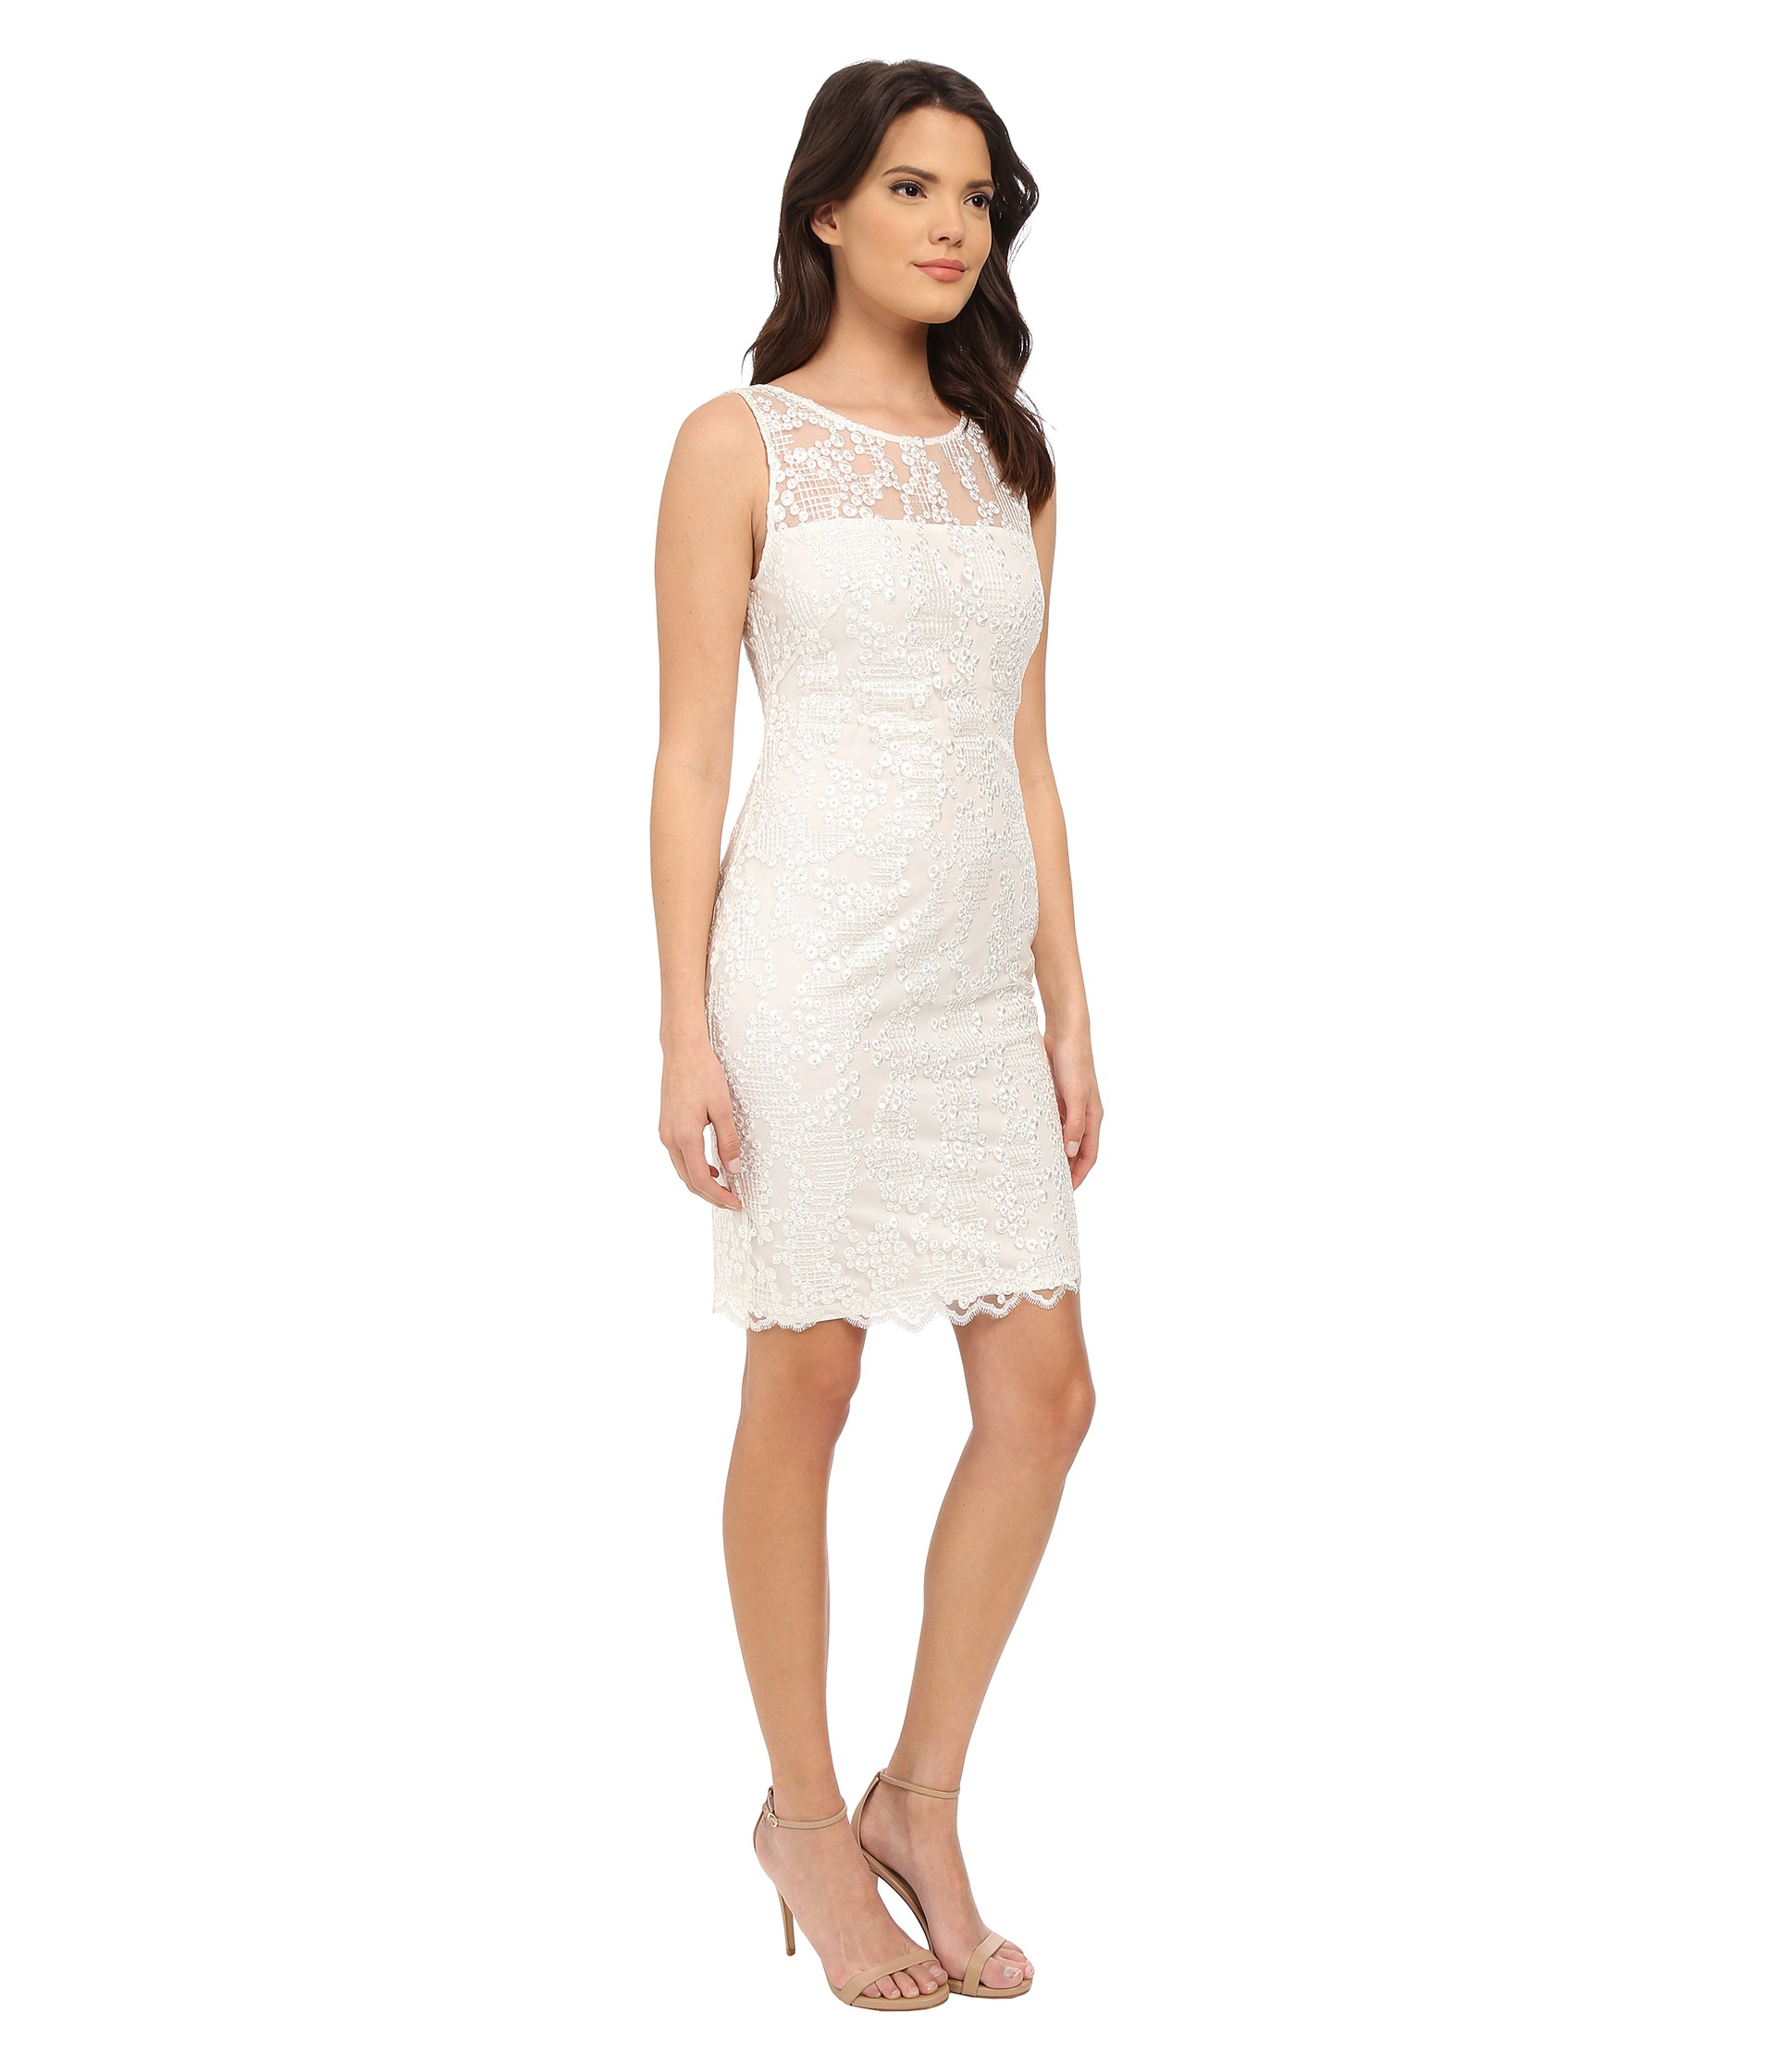 Calvin klein Lace Sheath Dress Cd5b4m6c in White | Lyst